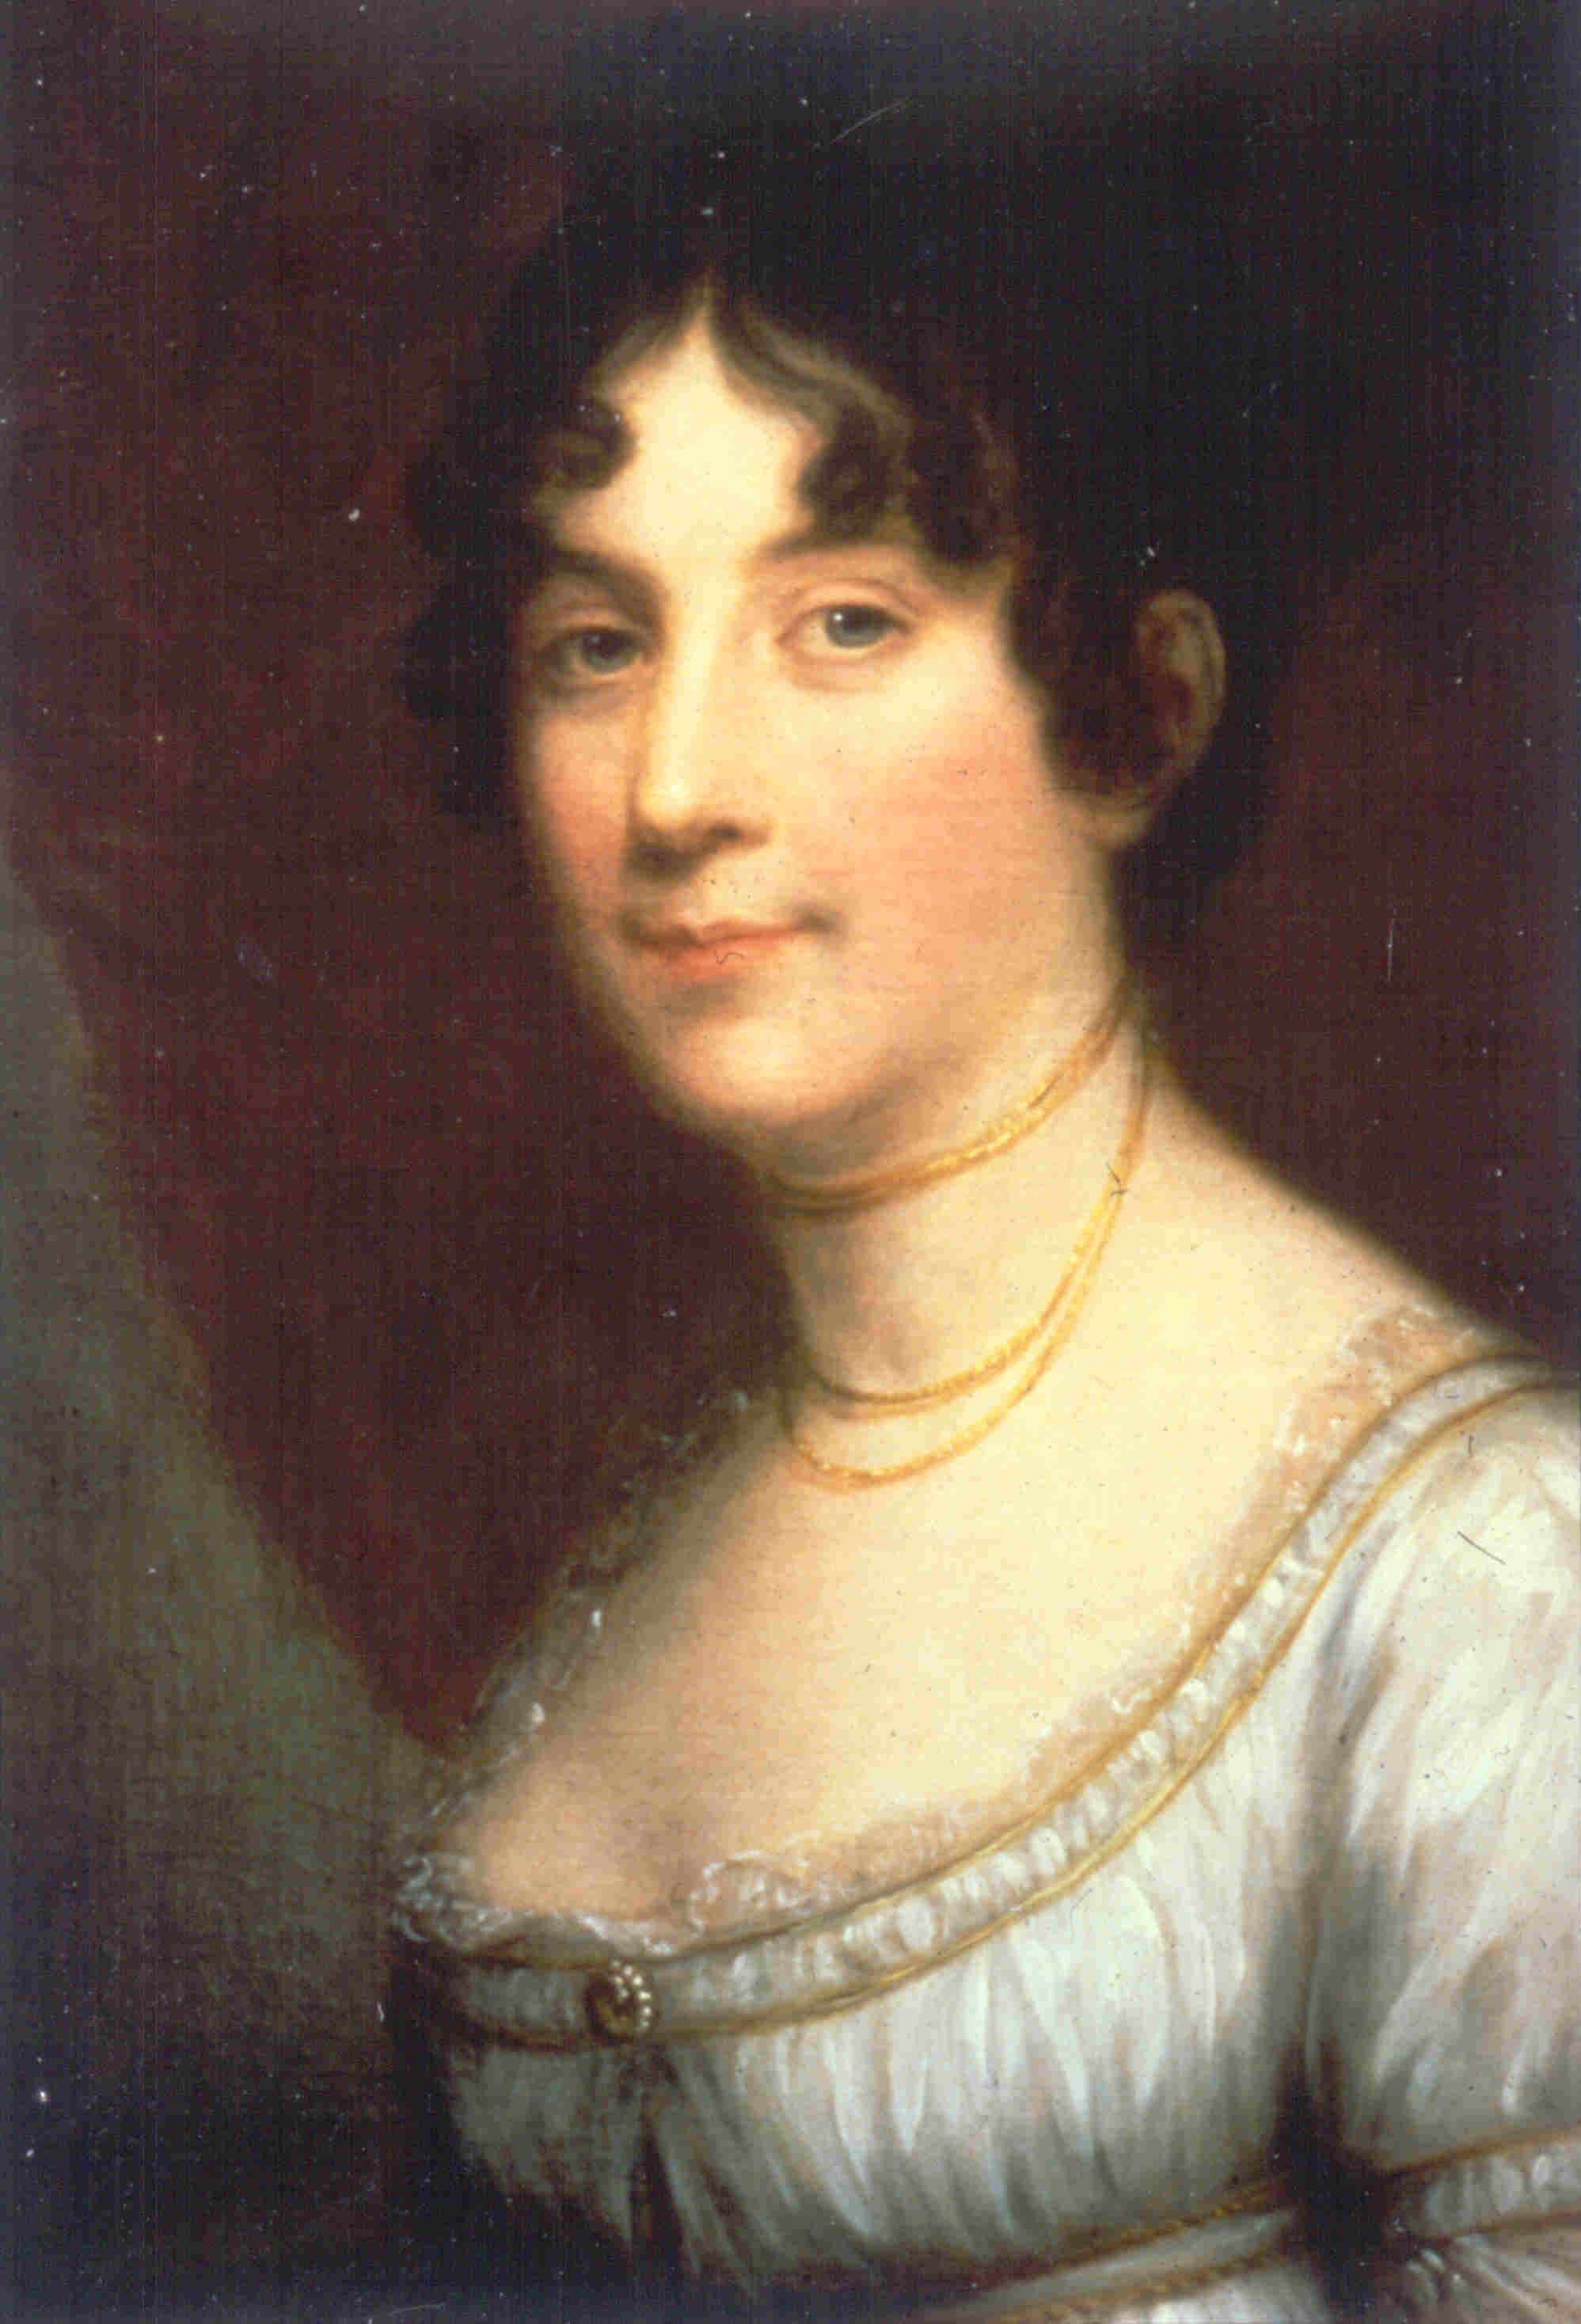 a biography of dolly payne madison Name dolly payne todd madison: 2: followers: biography: dolley payne todd madison was the spouse of the 4th president of the united states, james madison, and was first lady of the united states from 1809 to 1817.